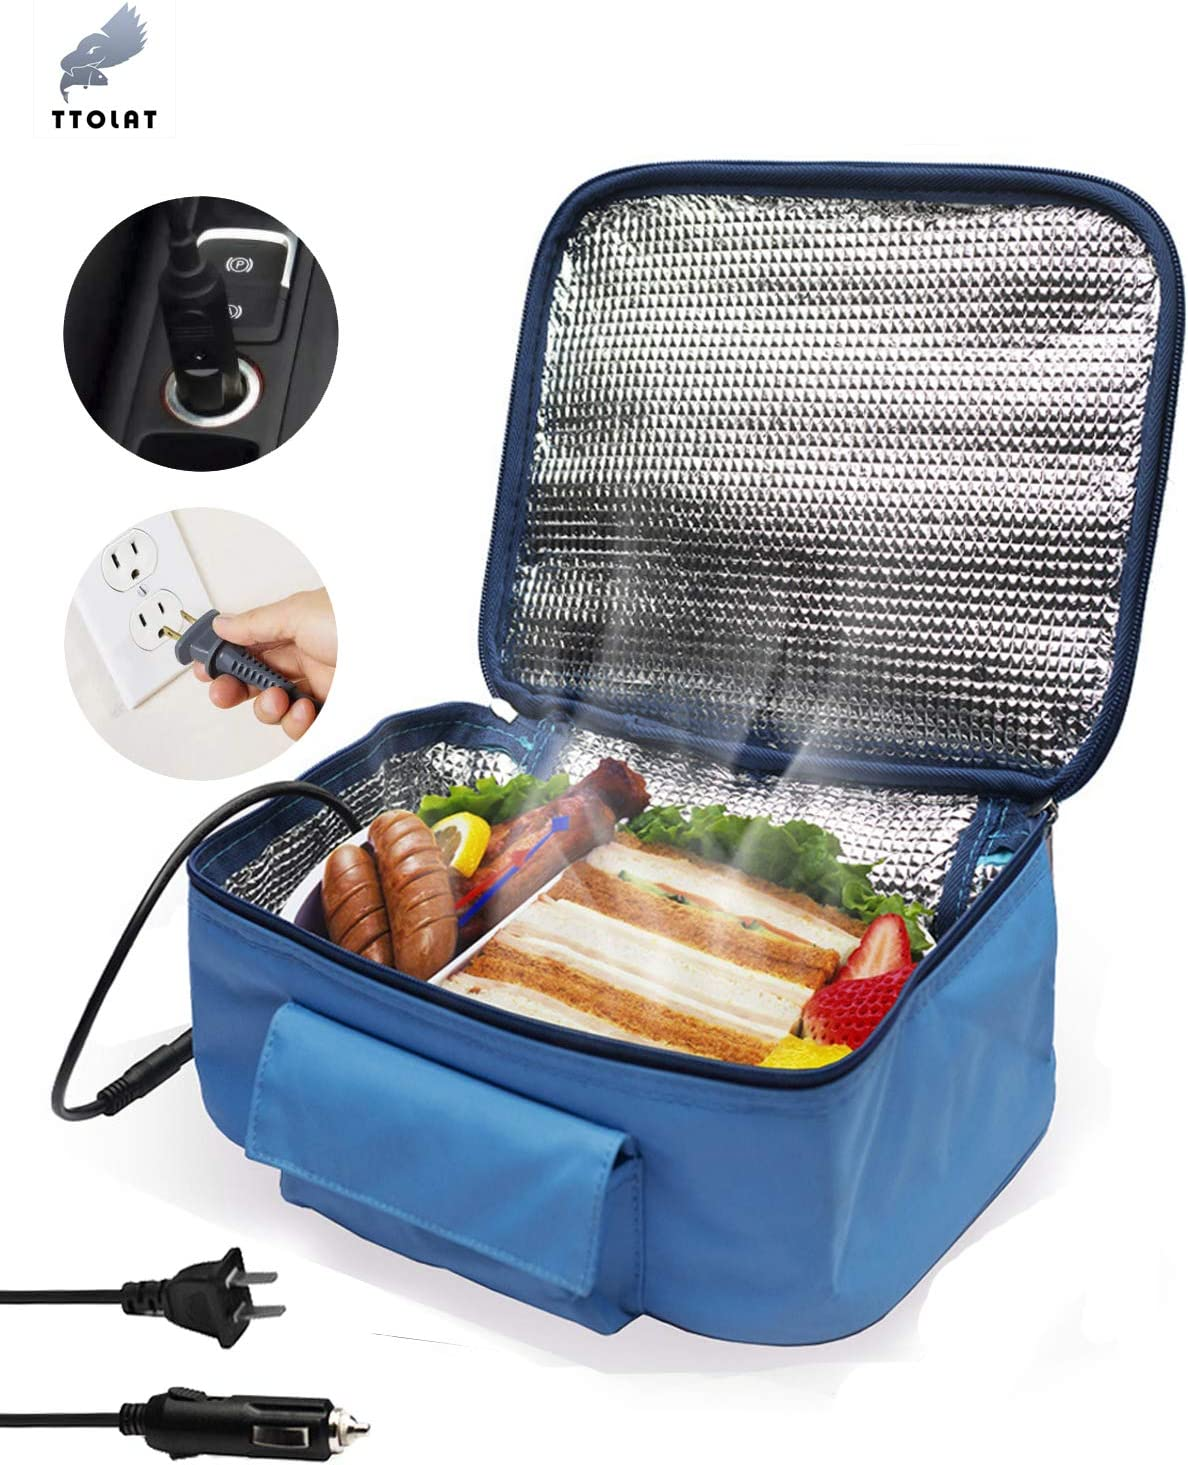 TTOLAT Mini Portable Oven Heated lunch box(12V and 110V Dual Use) Heating hamburger lunch and other food portable heating electric box,Lunch Box for Office, Travel, Potlucks, and Home Kitchen- Blue